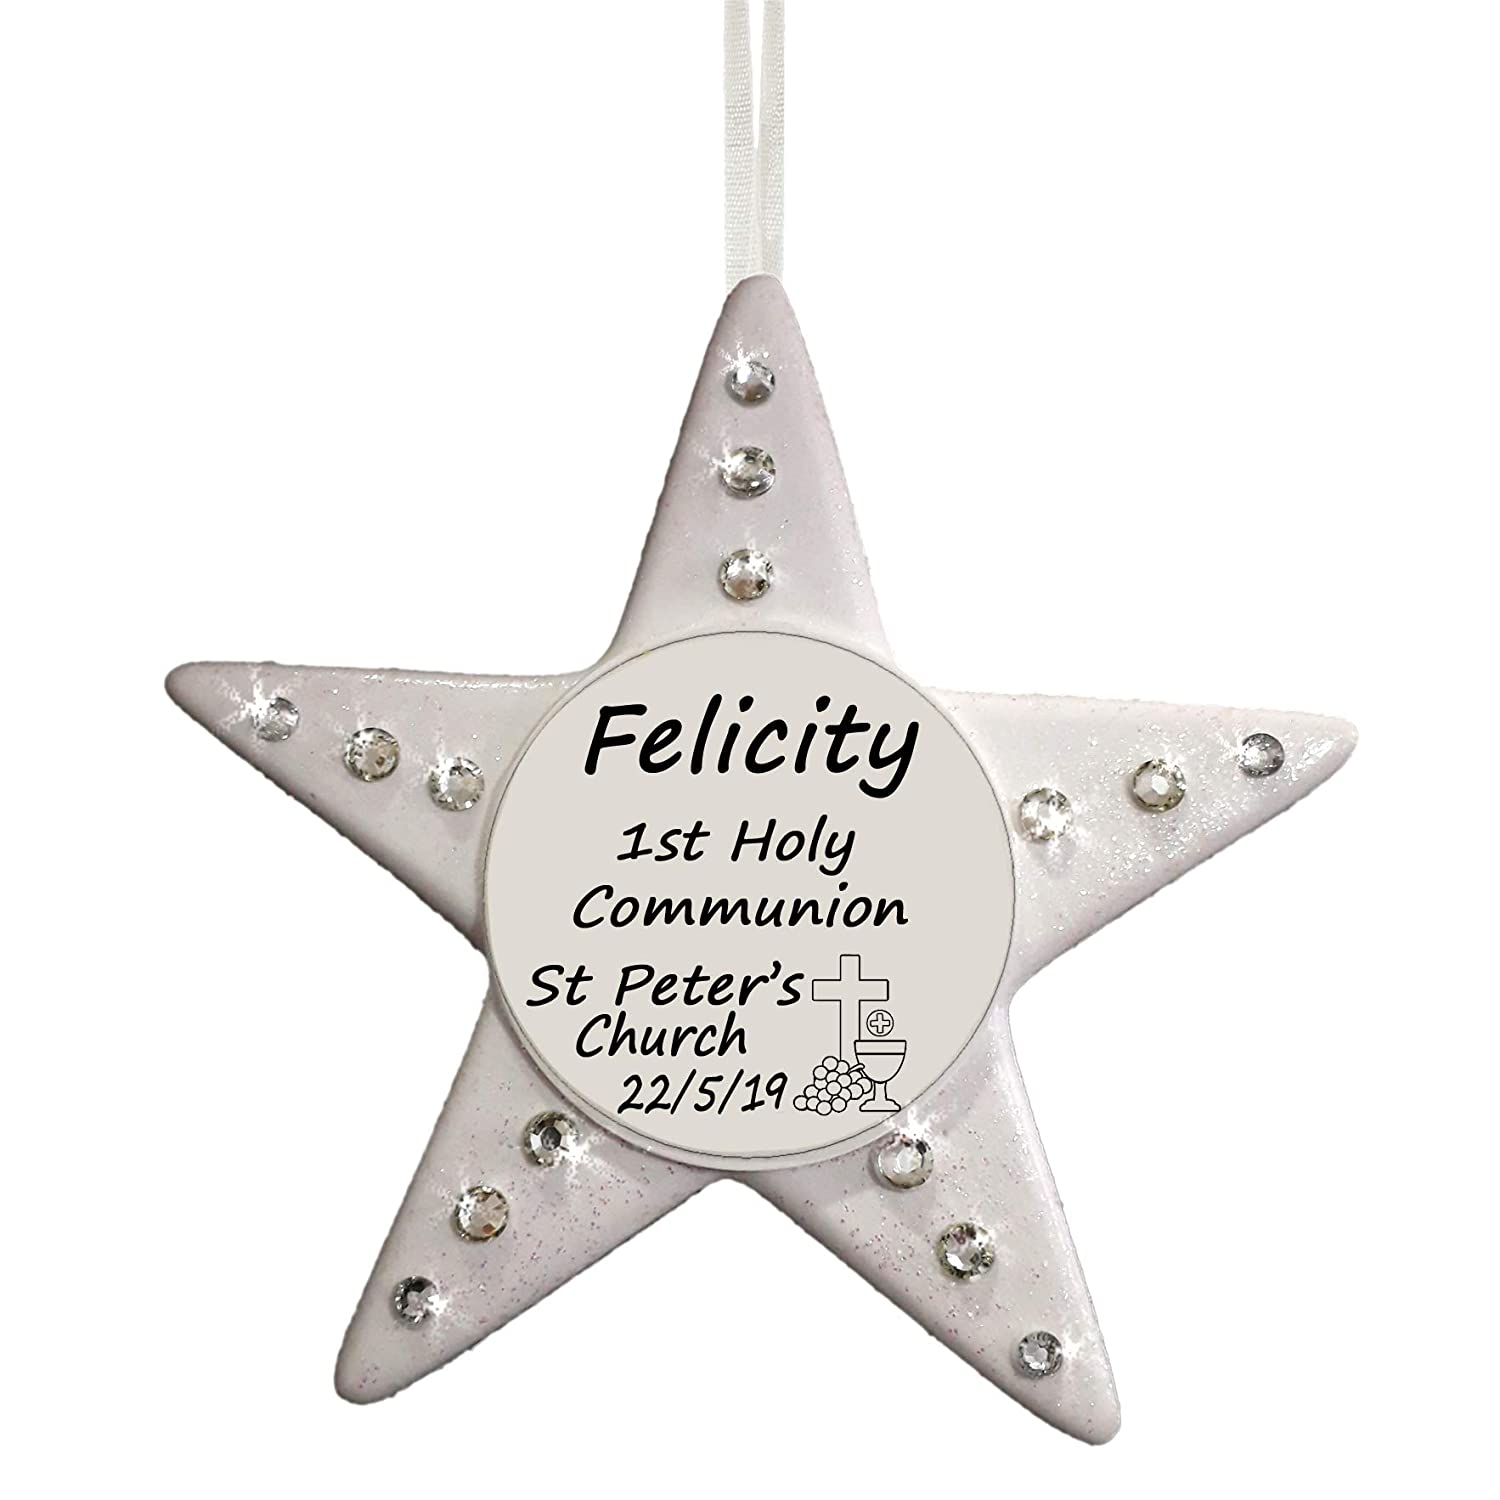 1st Holy Communion Personalised Star Religious Gift by Truly for You